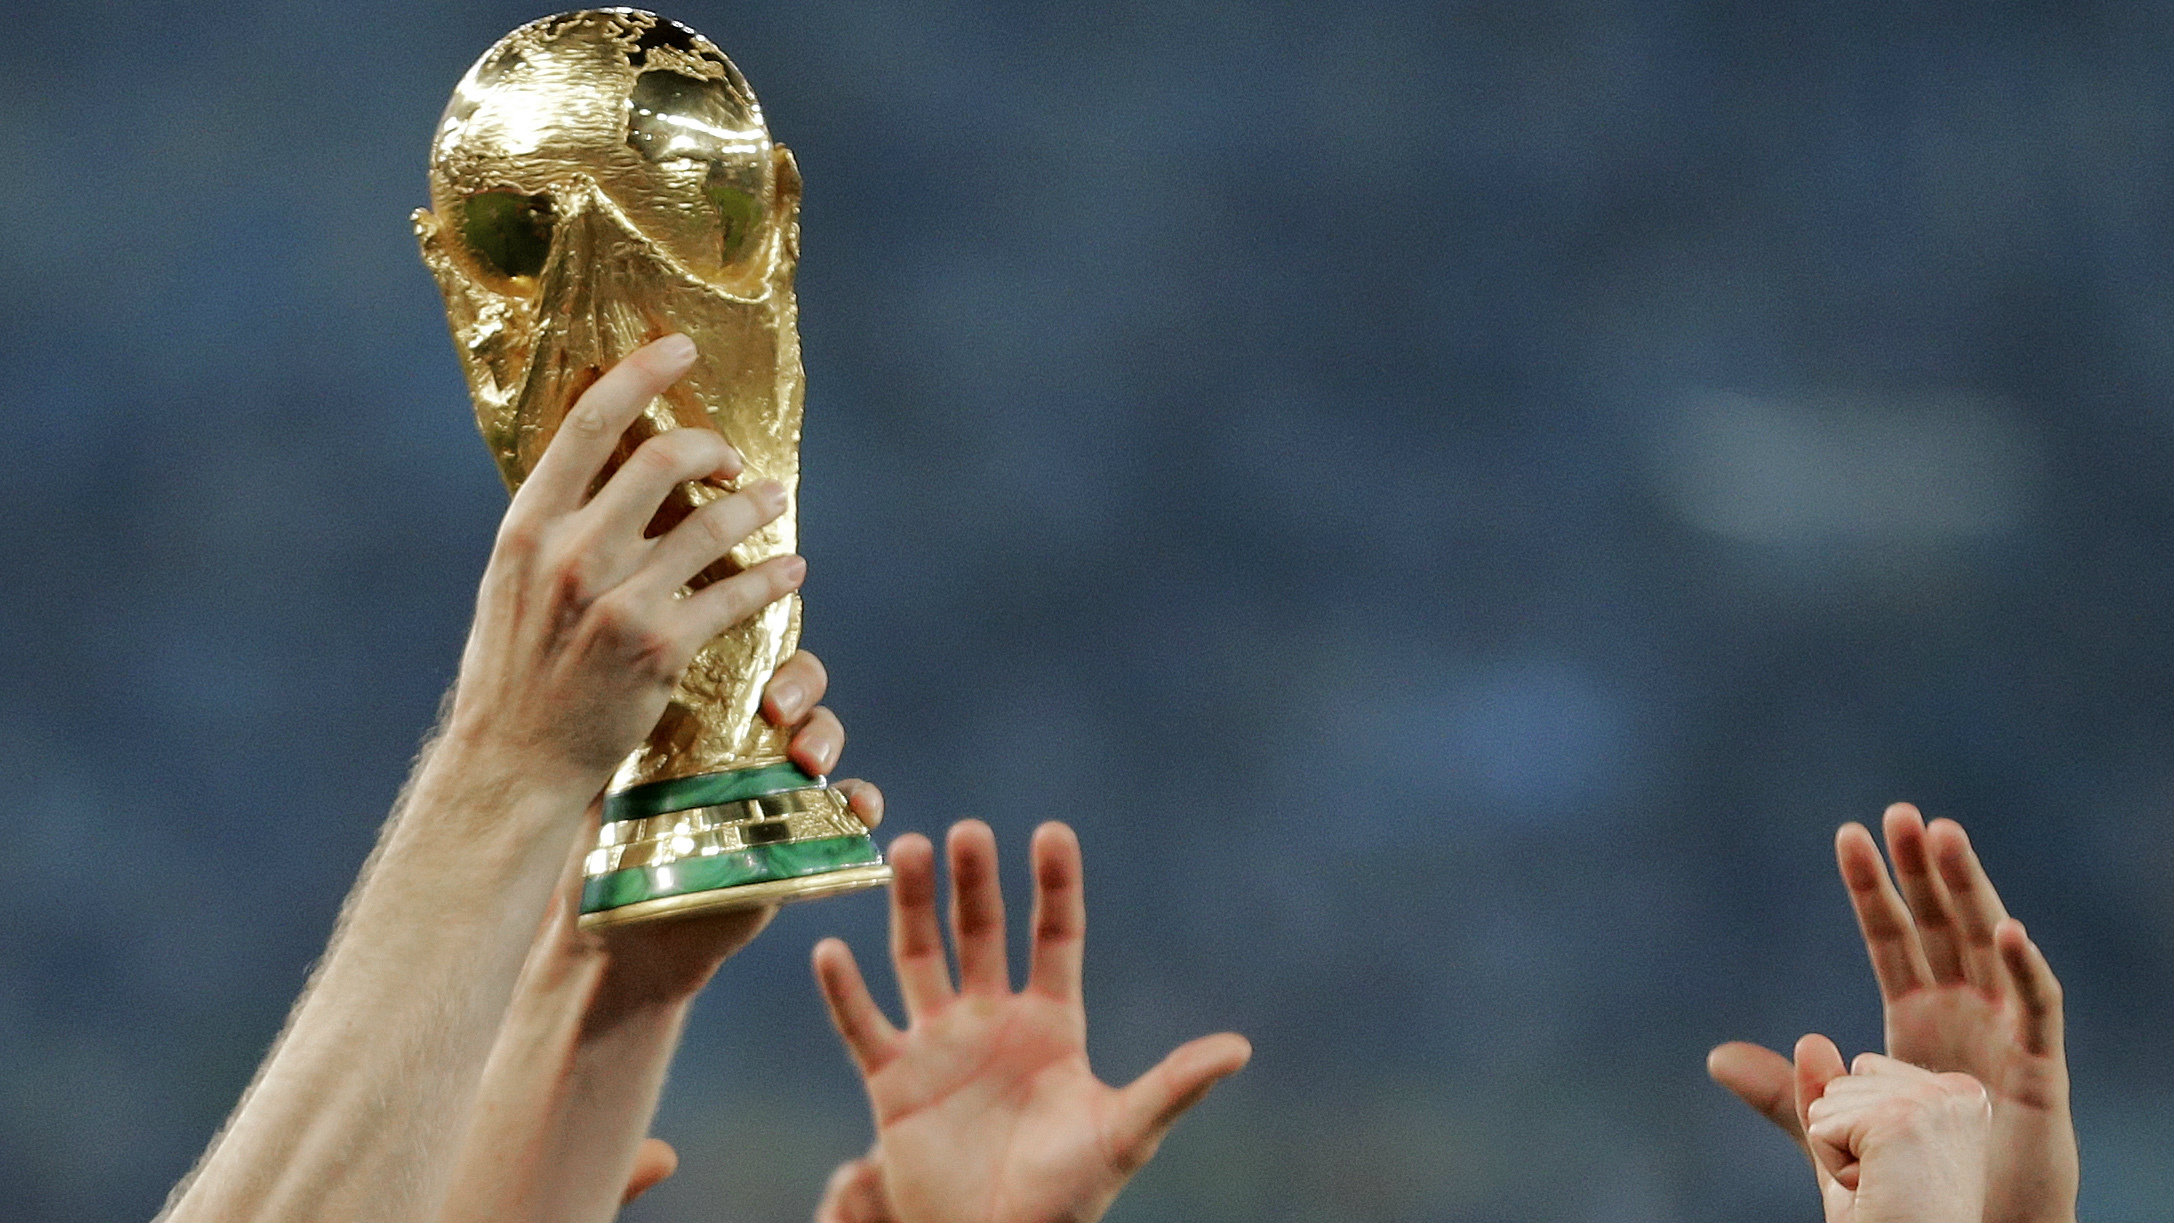 In this Sunday, July 13, 2014 file photo, German players reach out to touch the trophy after the World Cup final soccer match between Germany and Argentina at the Maracana Stadium in Rio de Janeiro, Brazil. Morocco will bid to host the 2026 World Cup, giving a joint bid from North America some competition. The Morocco Football Federation announced its intention to bid on Friday, Aug. 11, 2017 the deadline for countries to express their interest.